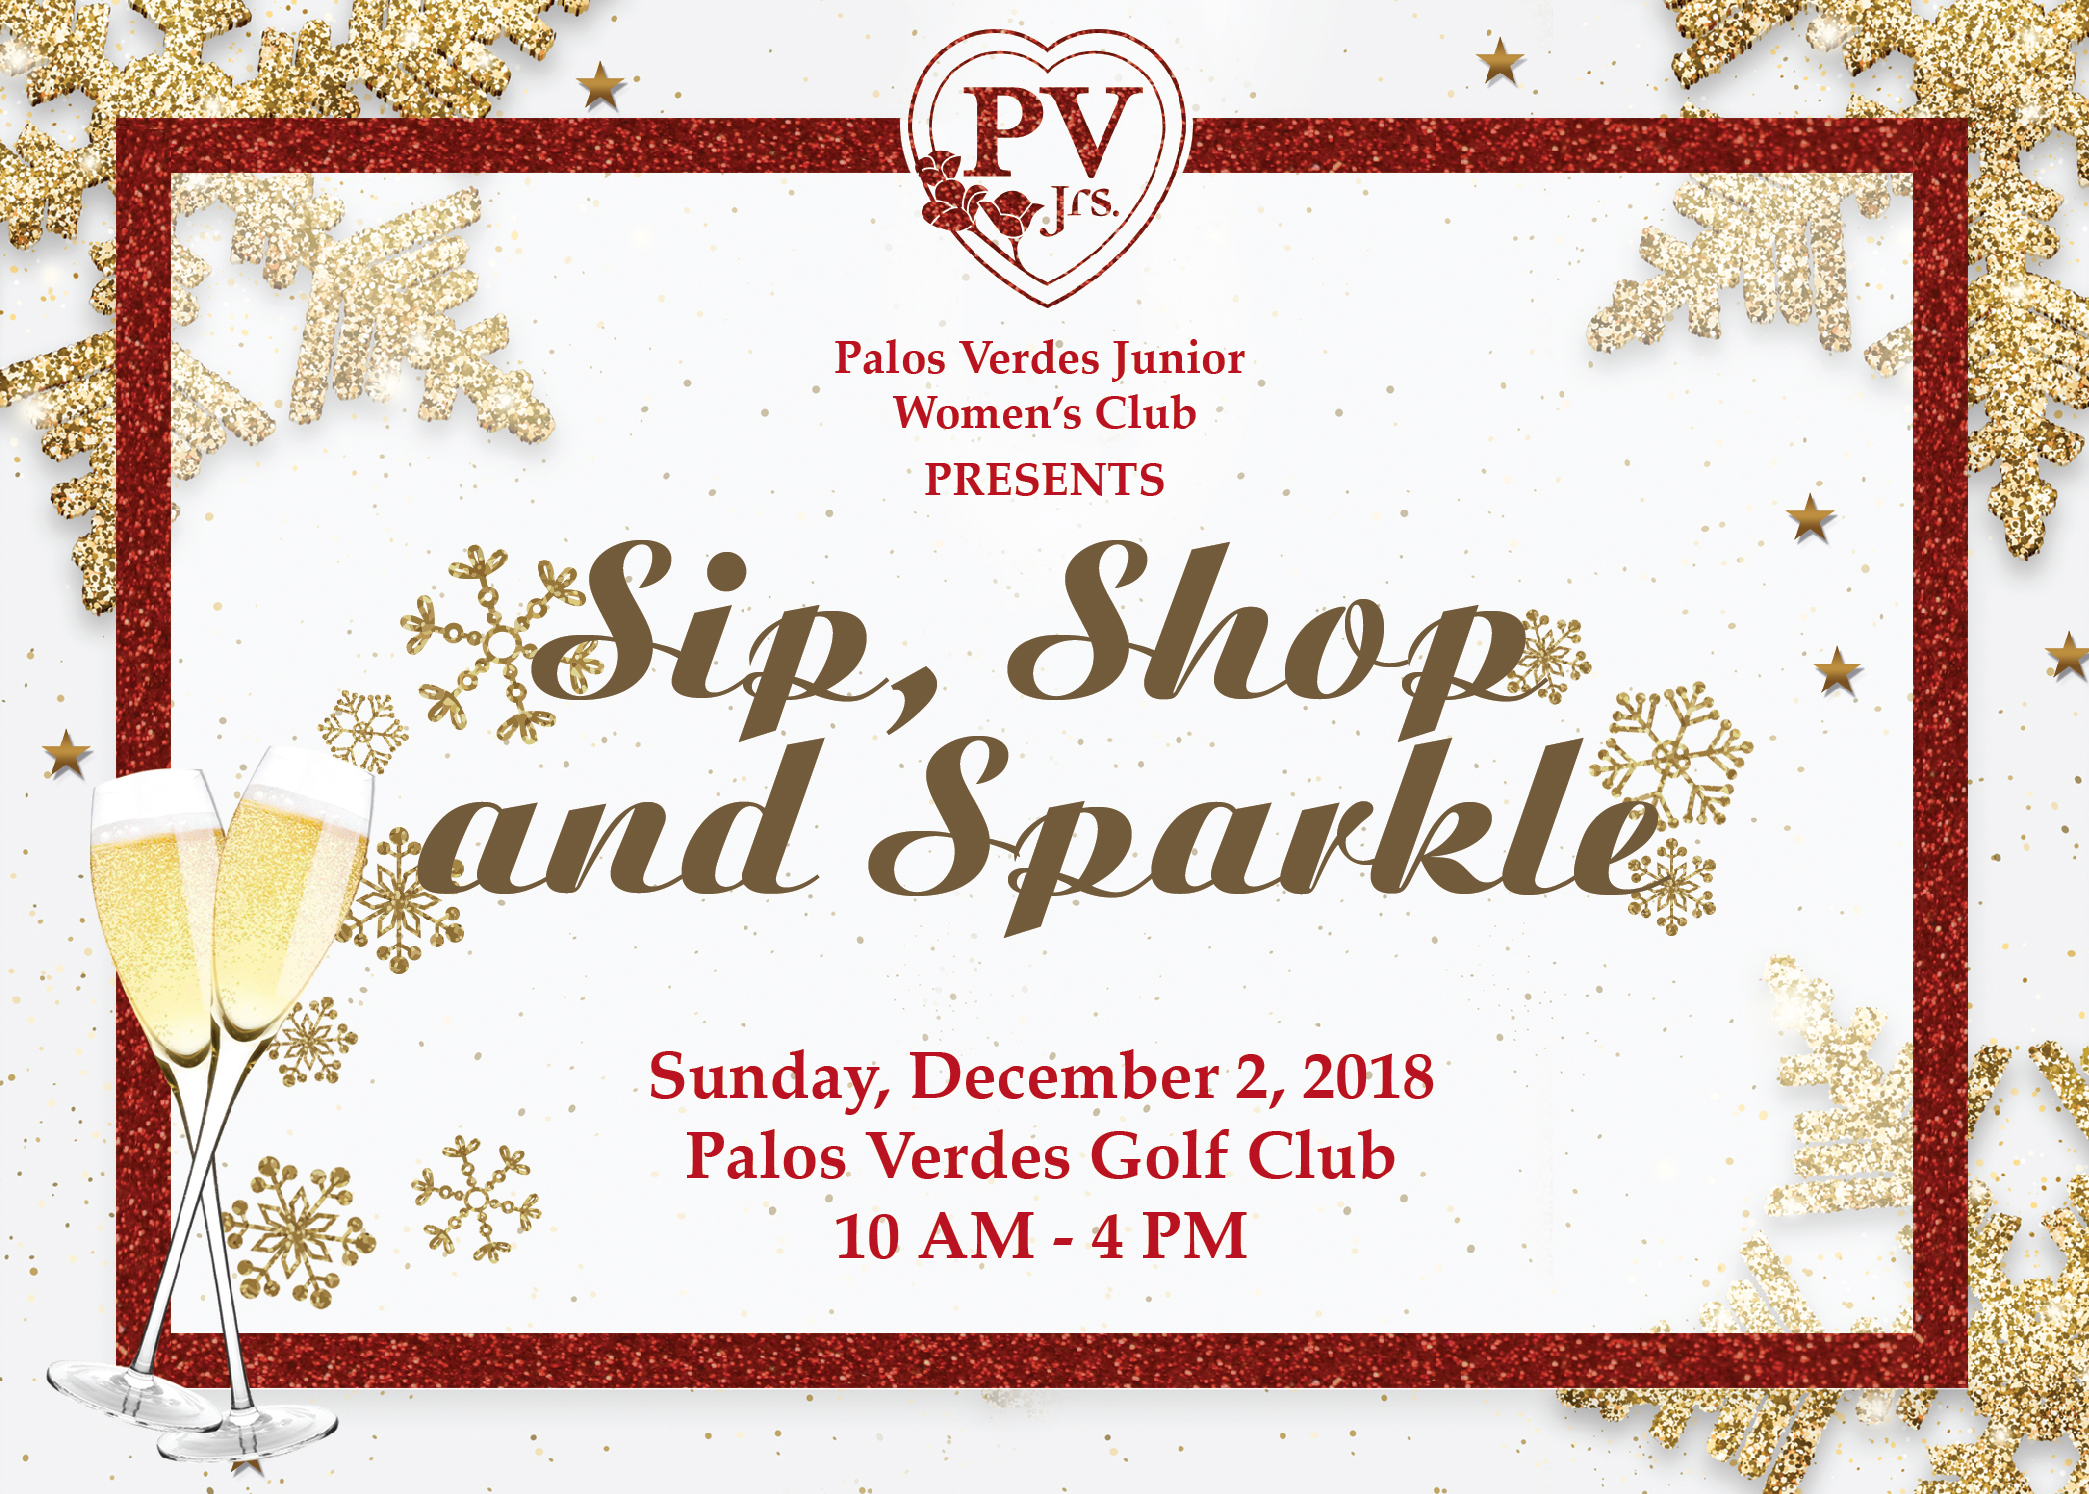 Shop & Support! - Come enjoy all the sparkle of the holiday season with PV Juniors! Don your best sparkly bling and shop in our fabulous boutique featuring dozens of unique vendors. Celebrate in the company of good friends with a delicious three course luncheon, festive holiday music performed by the Sugarplums, and fun games of chance with fantastic prizes. All proceeds benefit women and children in crisis in our South Bay community.